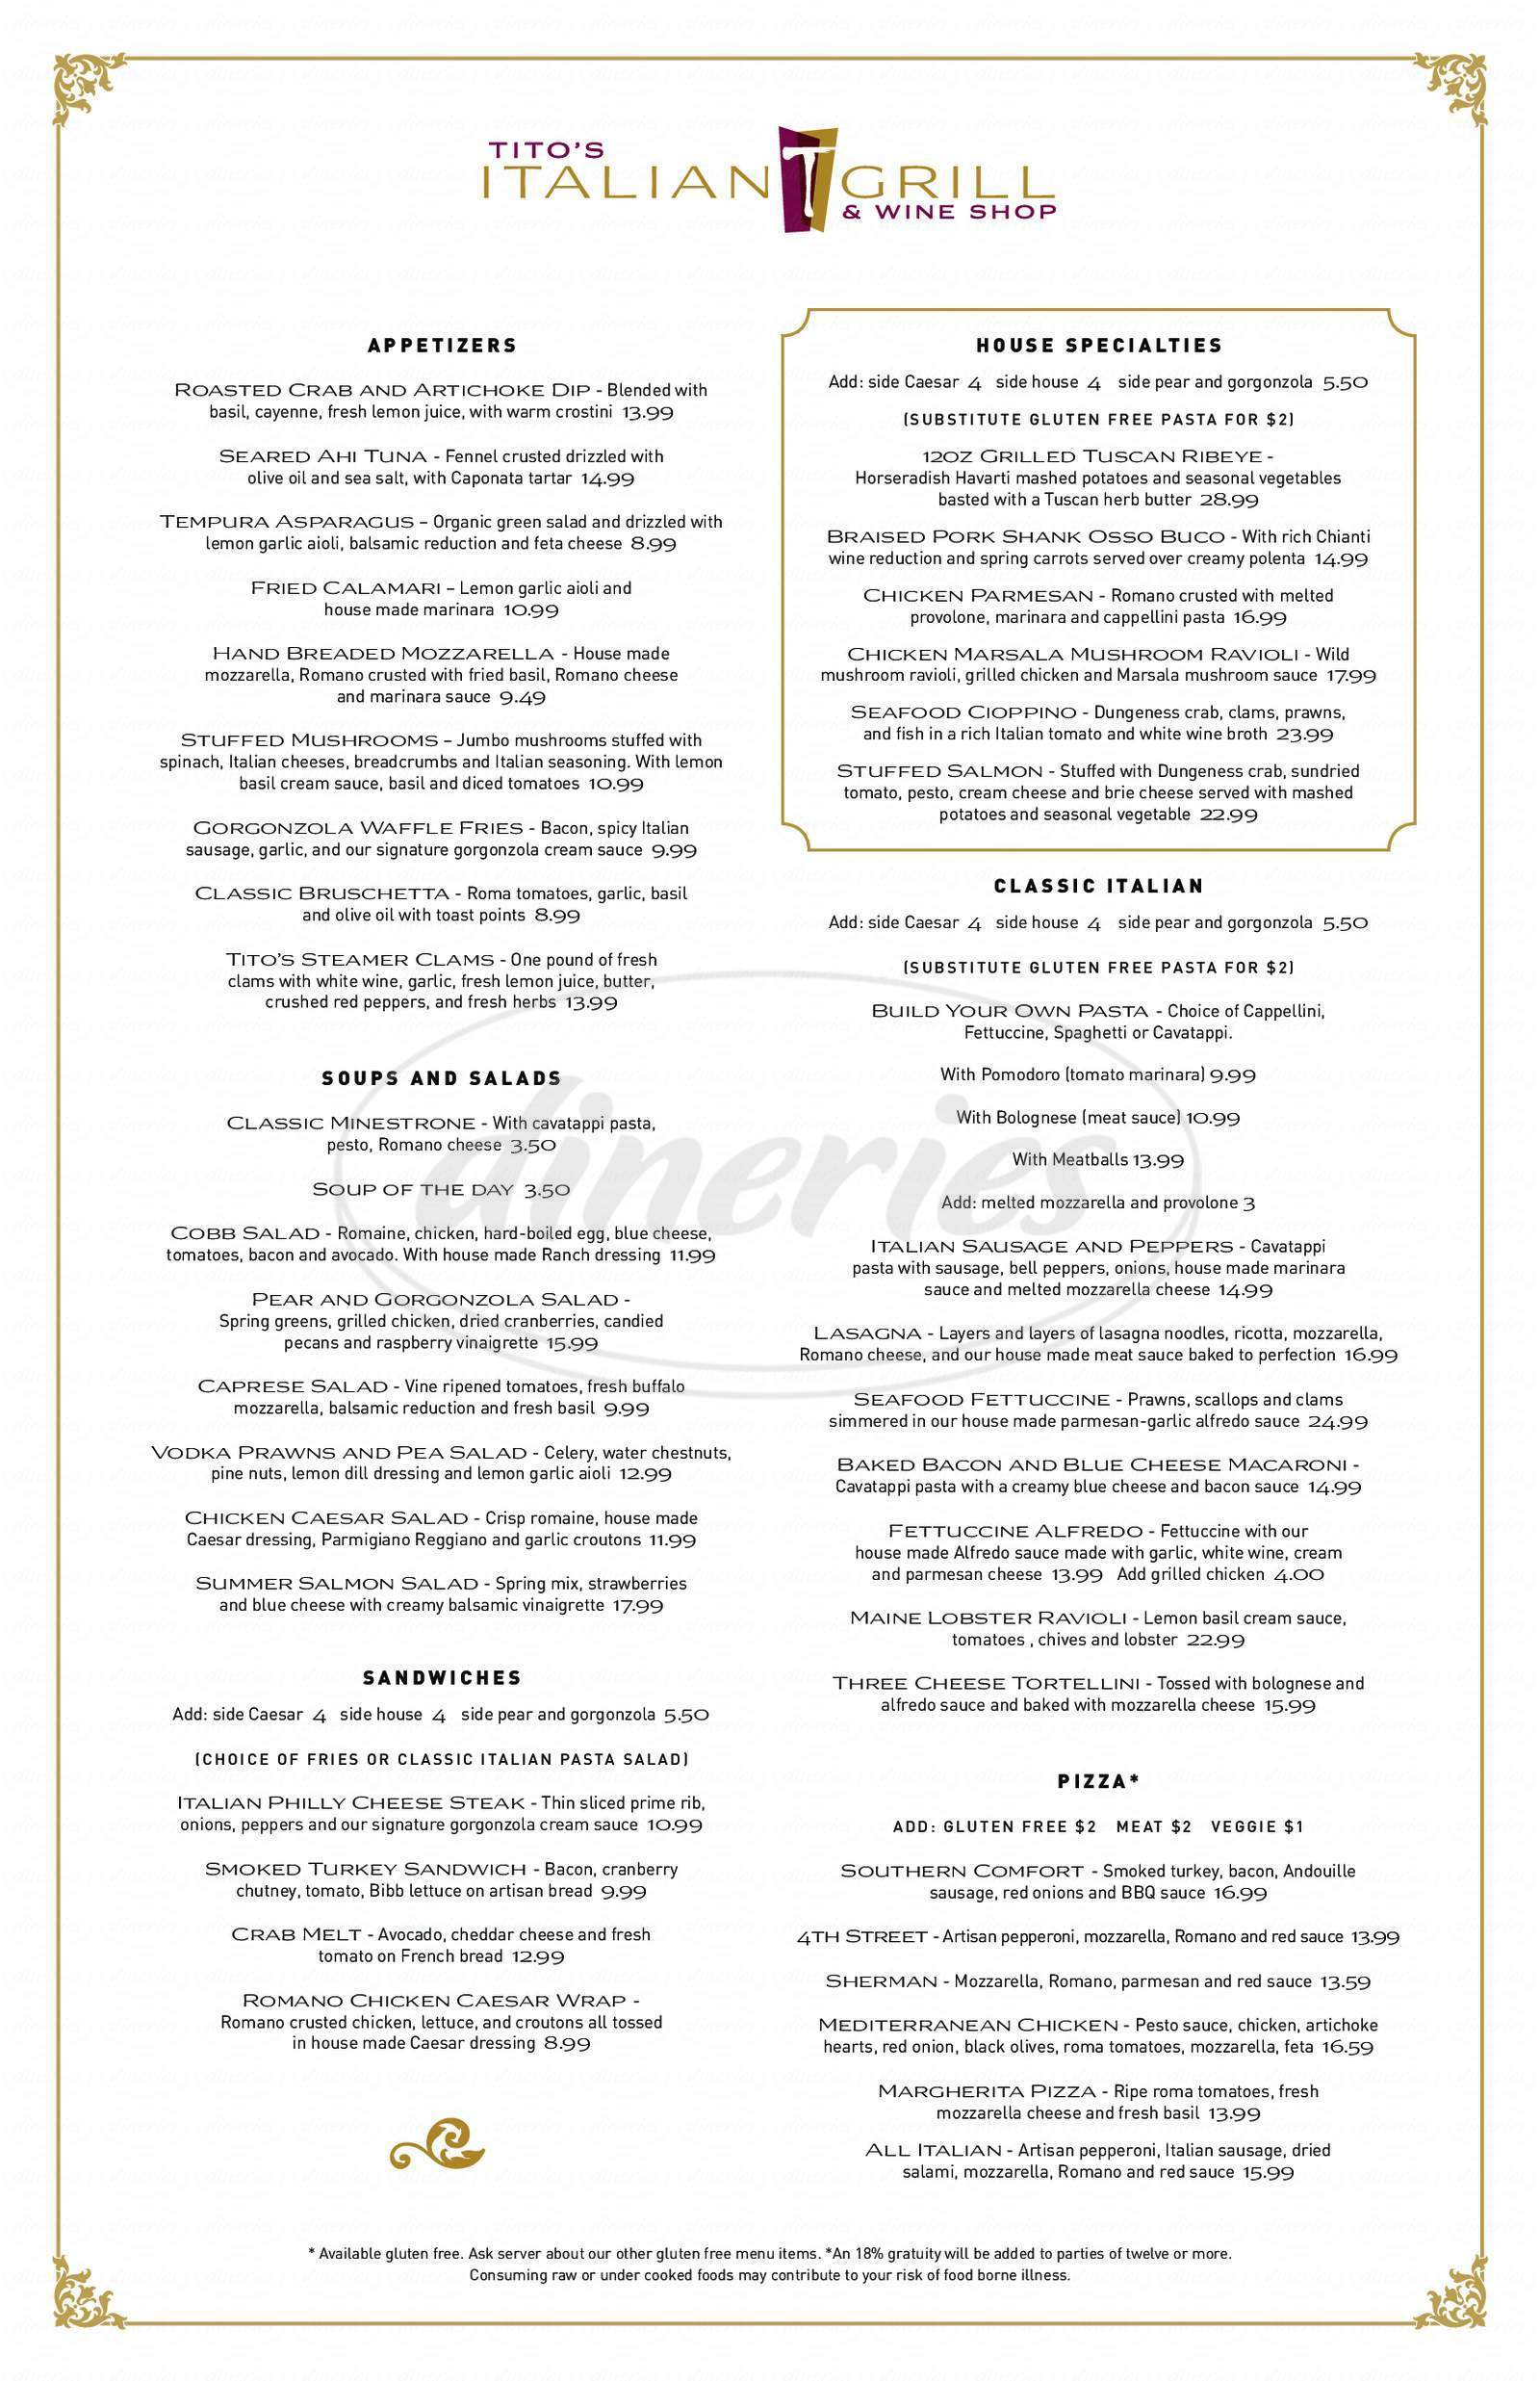 menu for Tito's Italian Grill & Wine Shop